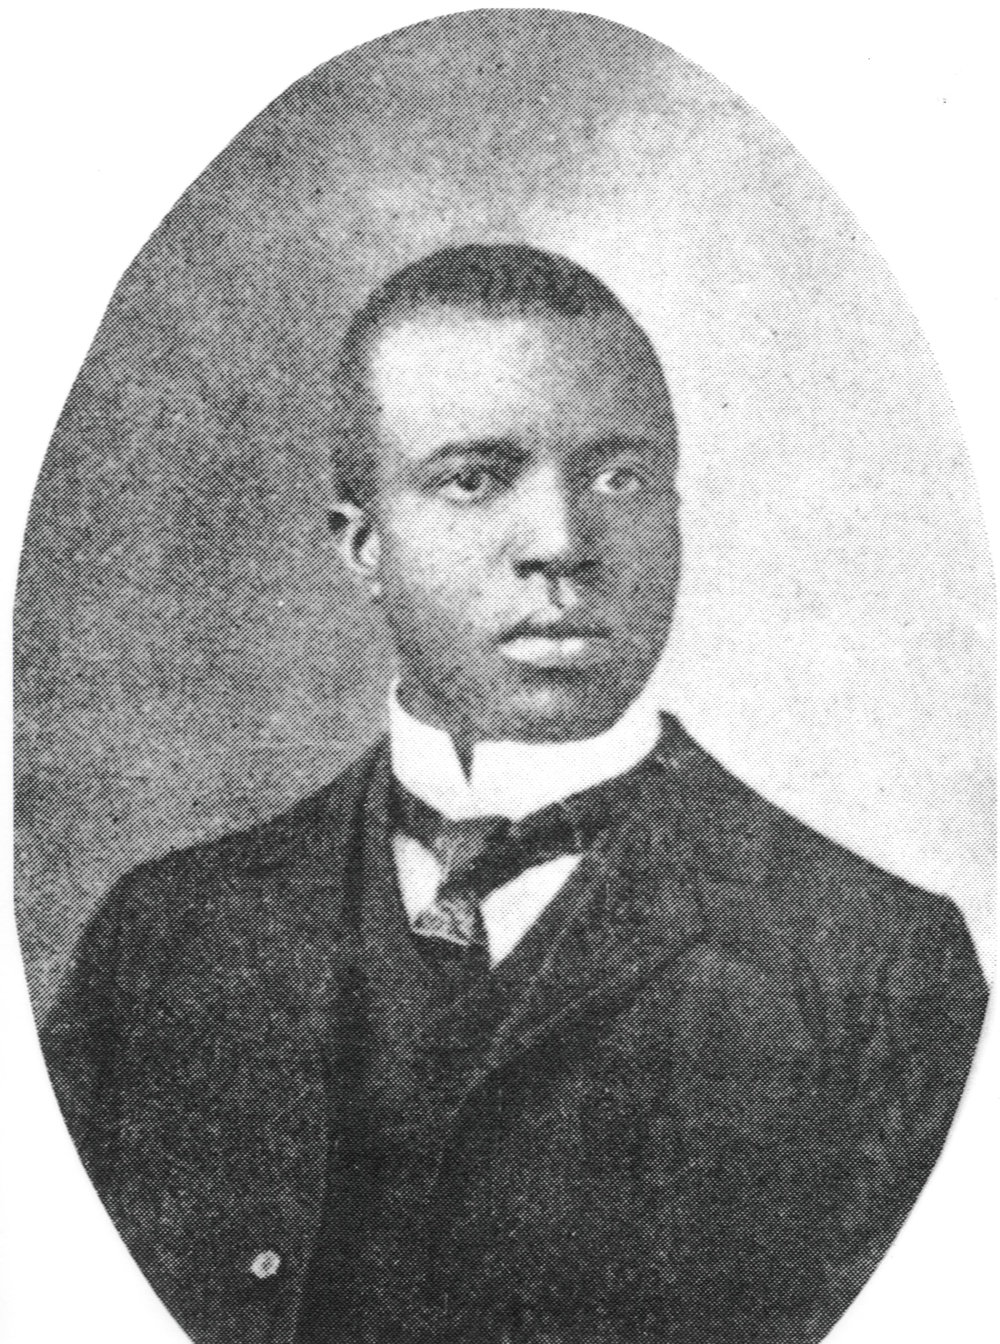 Scott Joplin - Photographer Unknown